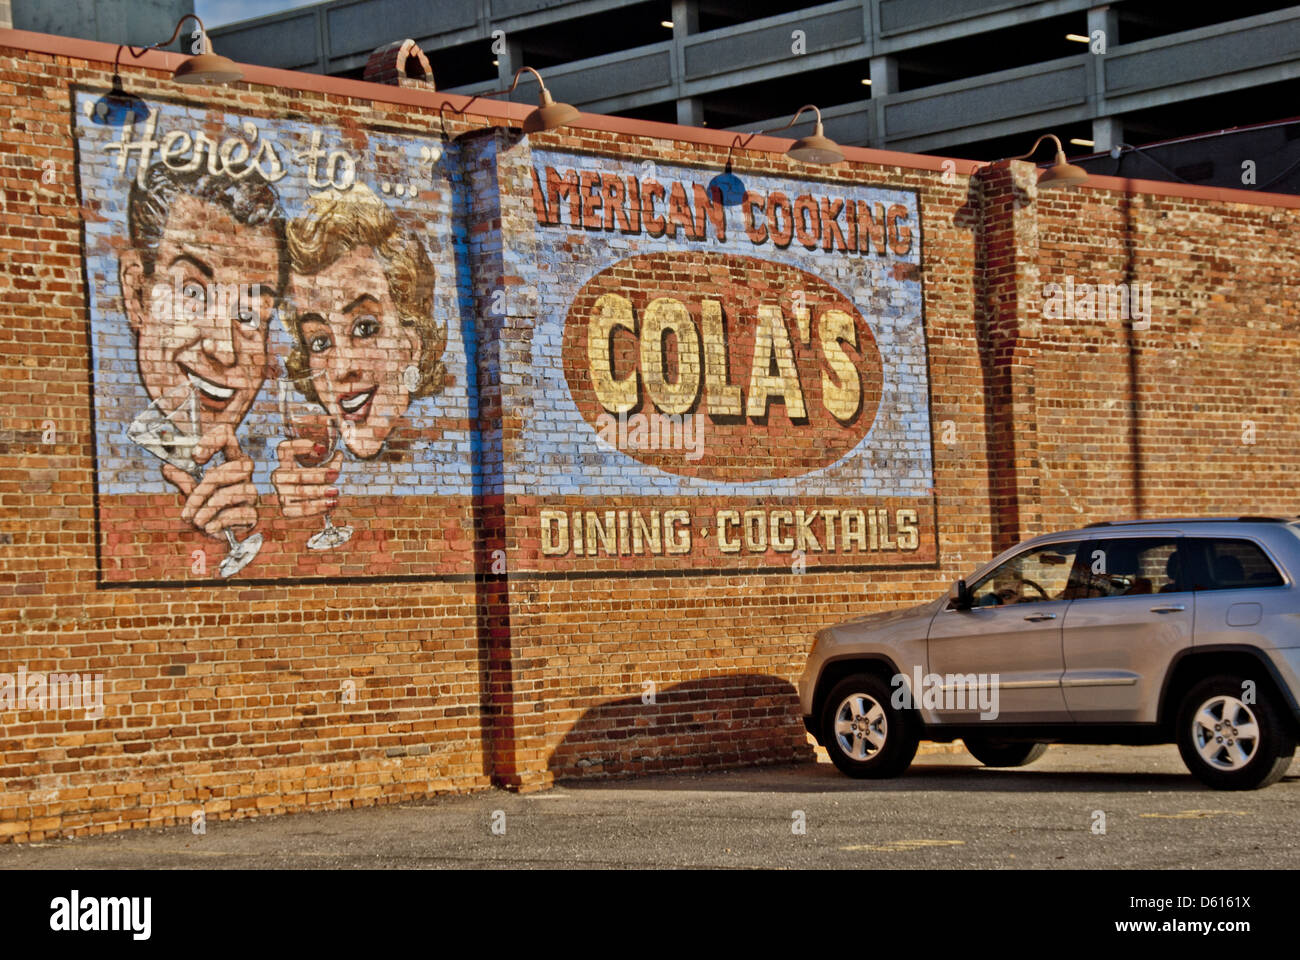 man mural building exterior stock photos man mural building painted mural on brick exterior of the royal crown cola bottling company building columbia